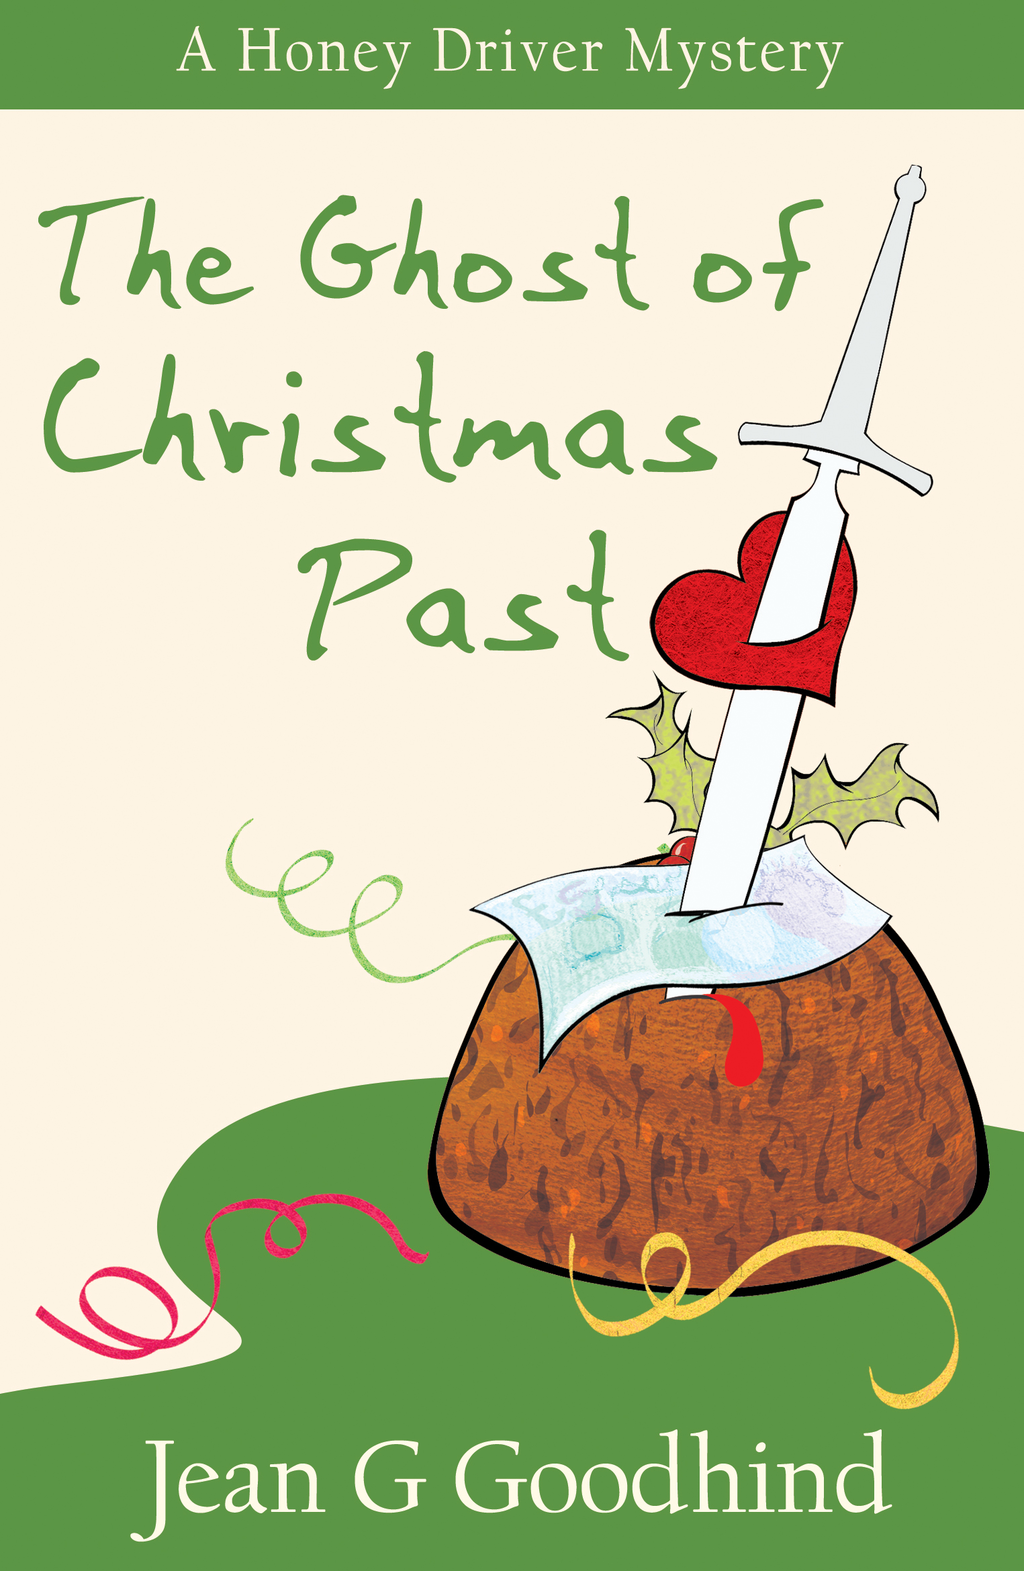 The Ghost of Christmas Past - A Honey Driver Murder Mystery